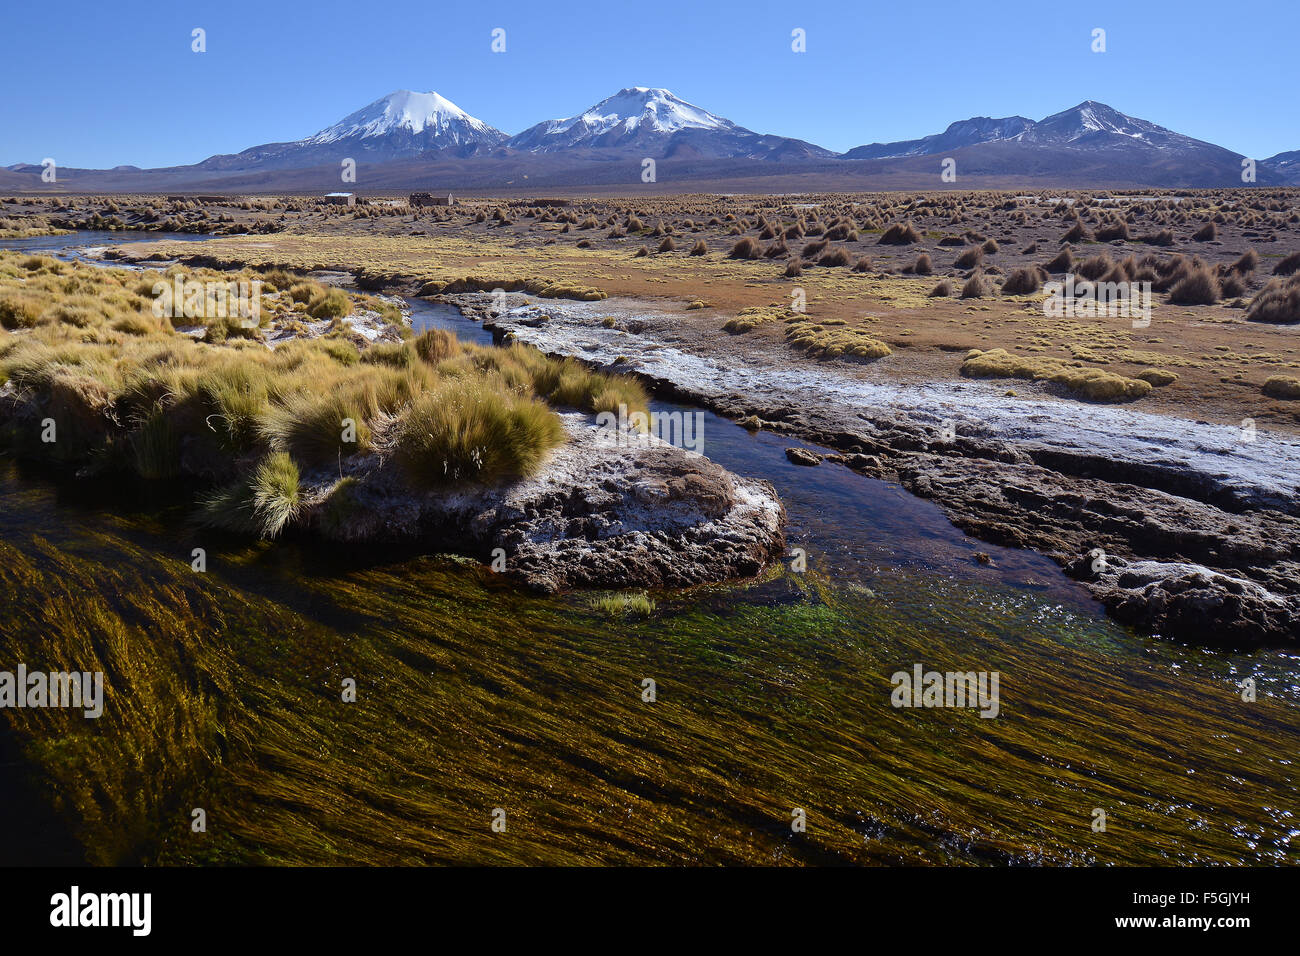 Snowcapped volcanoes Pomerape and Parinacota, Sajama National Park, border between Bolivia and Chile - Stock Image